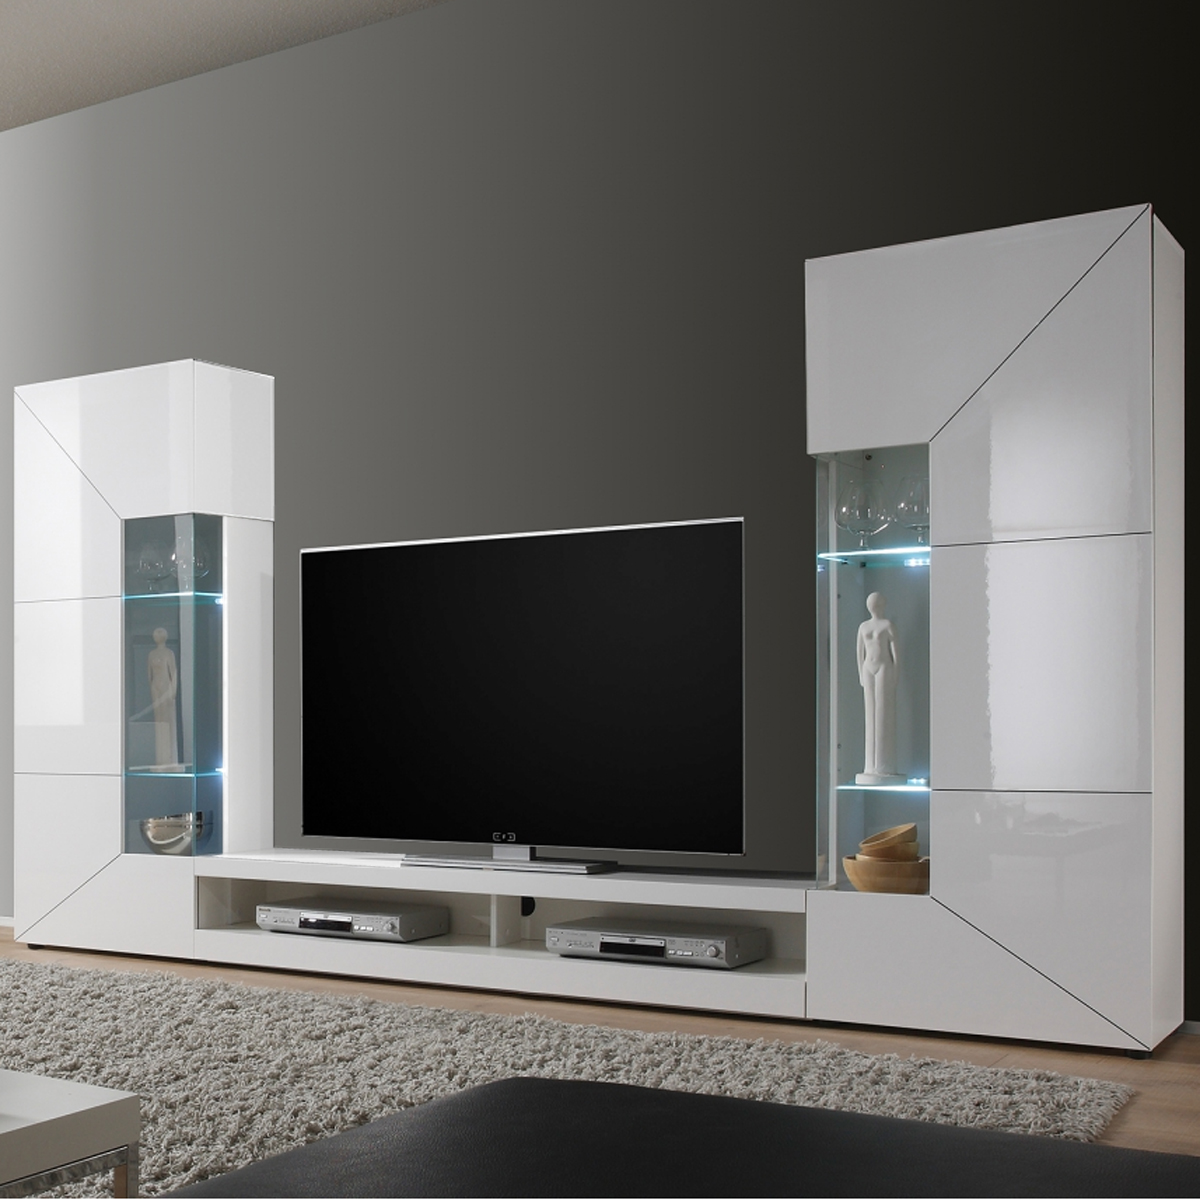 wohnwand mediawand 2e anbauwand wei hochglanz mit tv. Black Bedroom Furniture Sets. Home Design Ideas